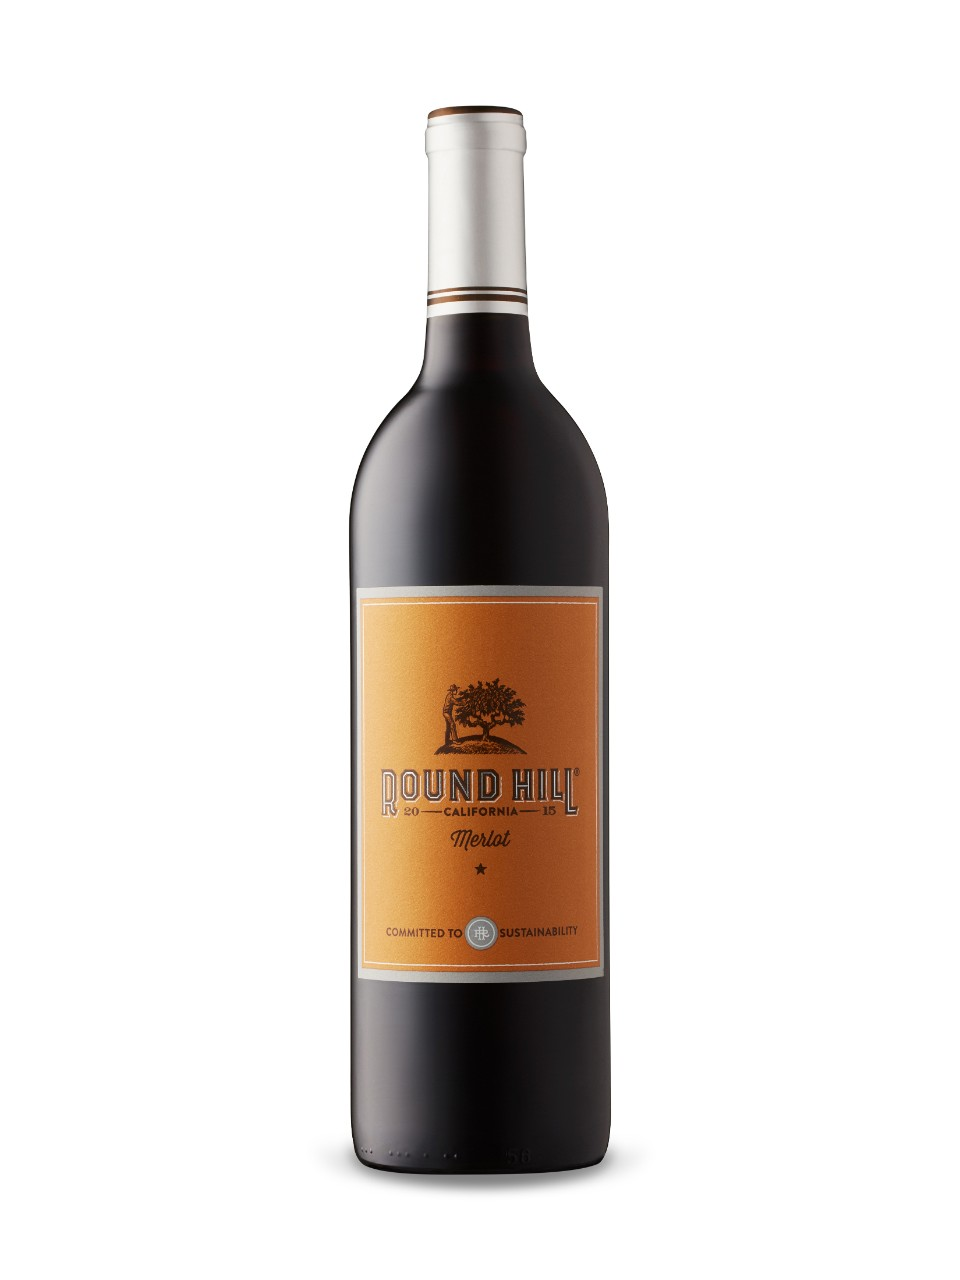 Round Hill California Merlot 2015